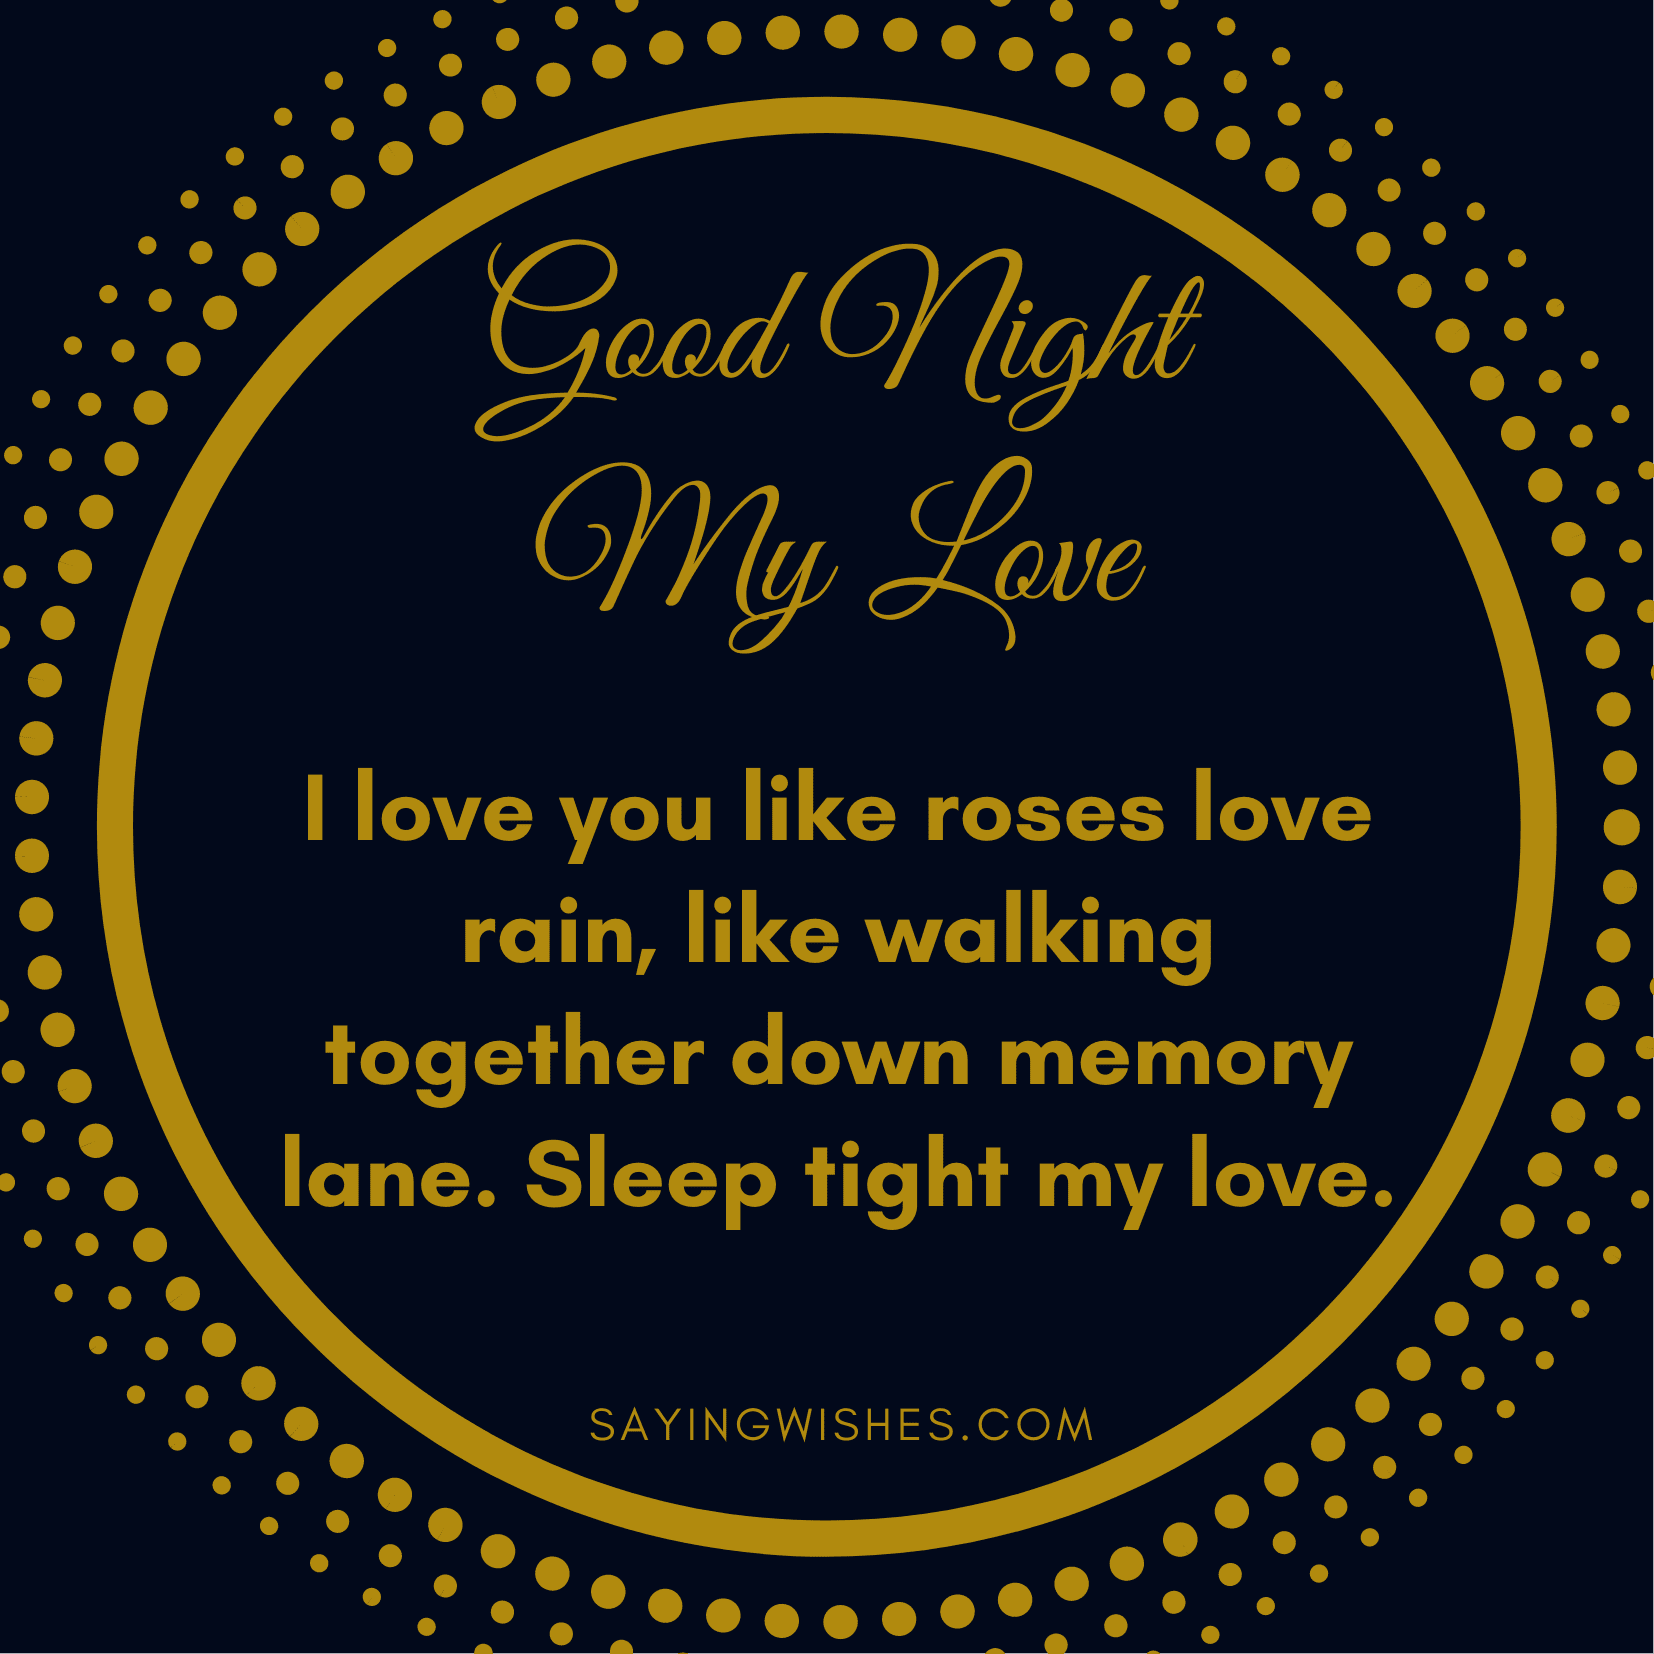 romantic good night messages for long distance girlfriend